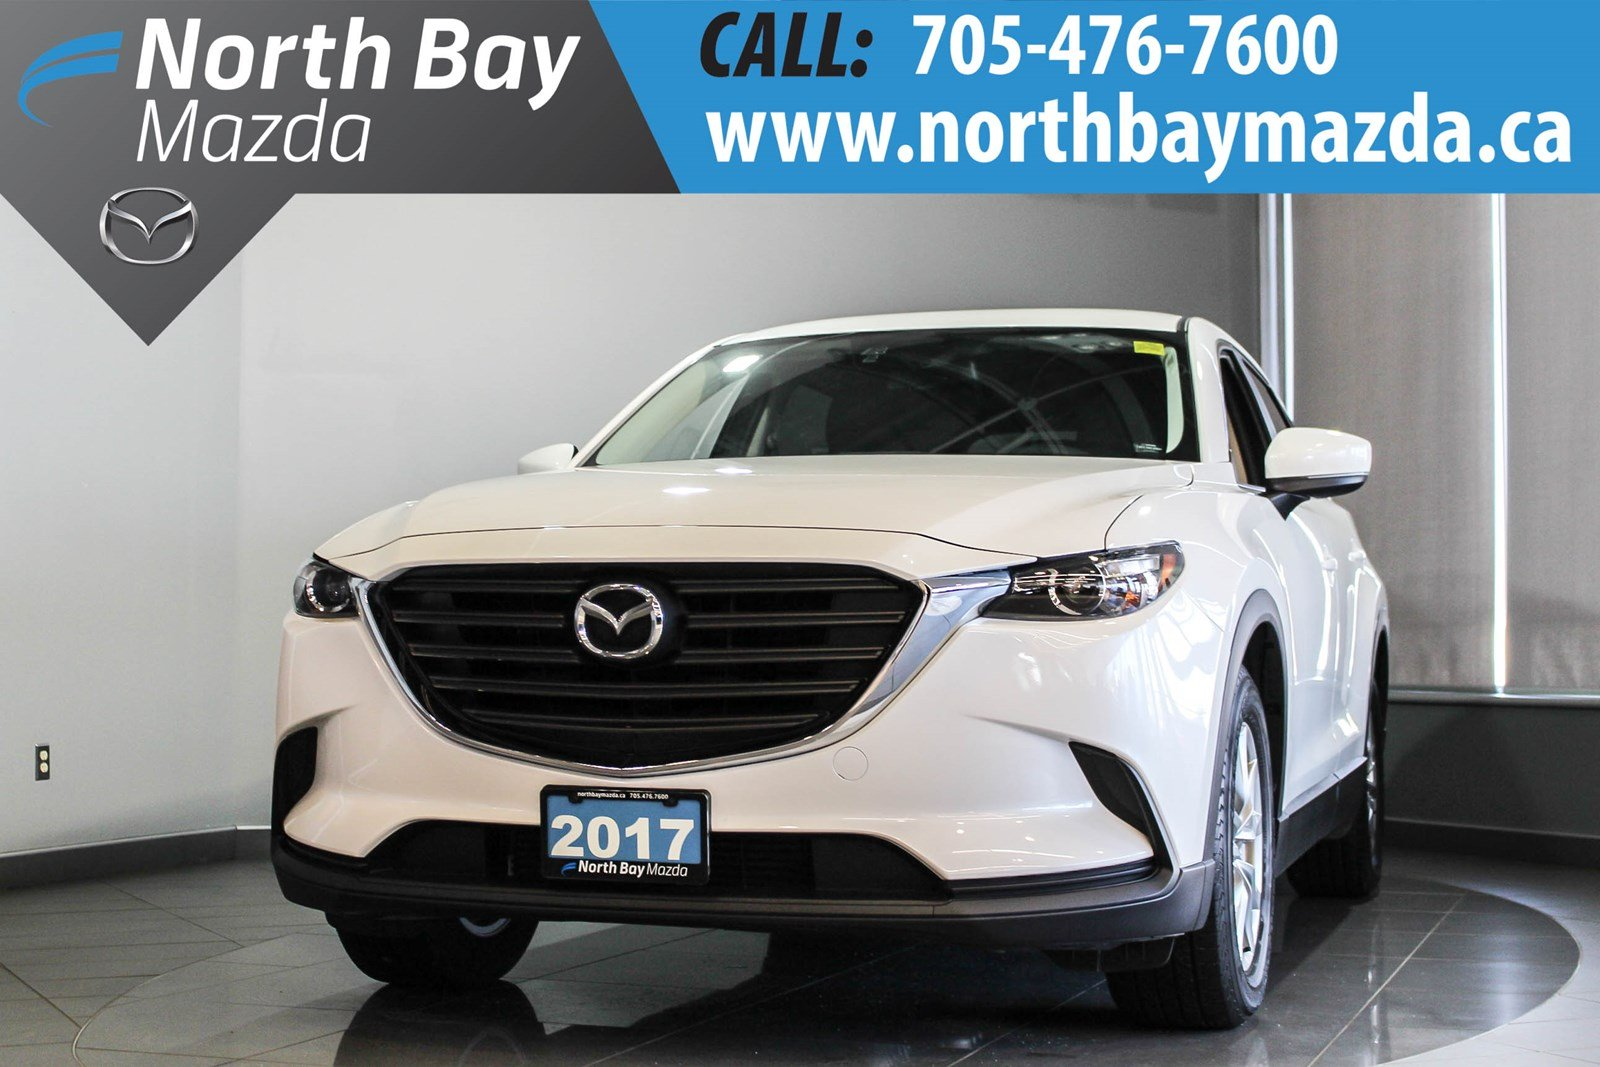 Pre-Owned 2017 Mazda CX-9 GS Lease Return with Heated Seats, Tri-Zone Climate Control